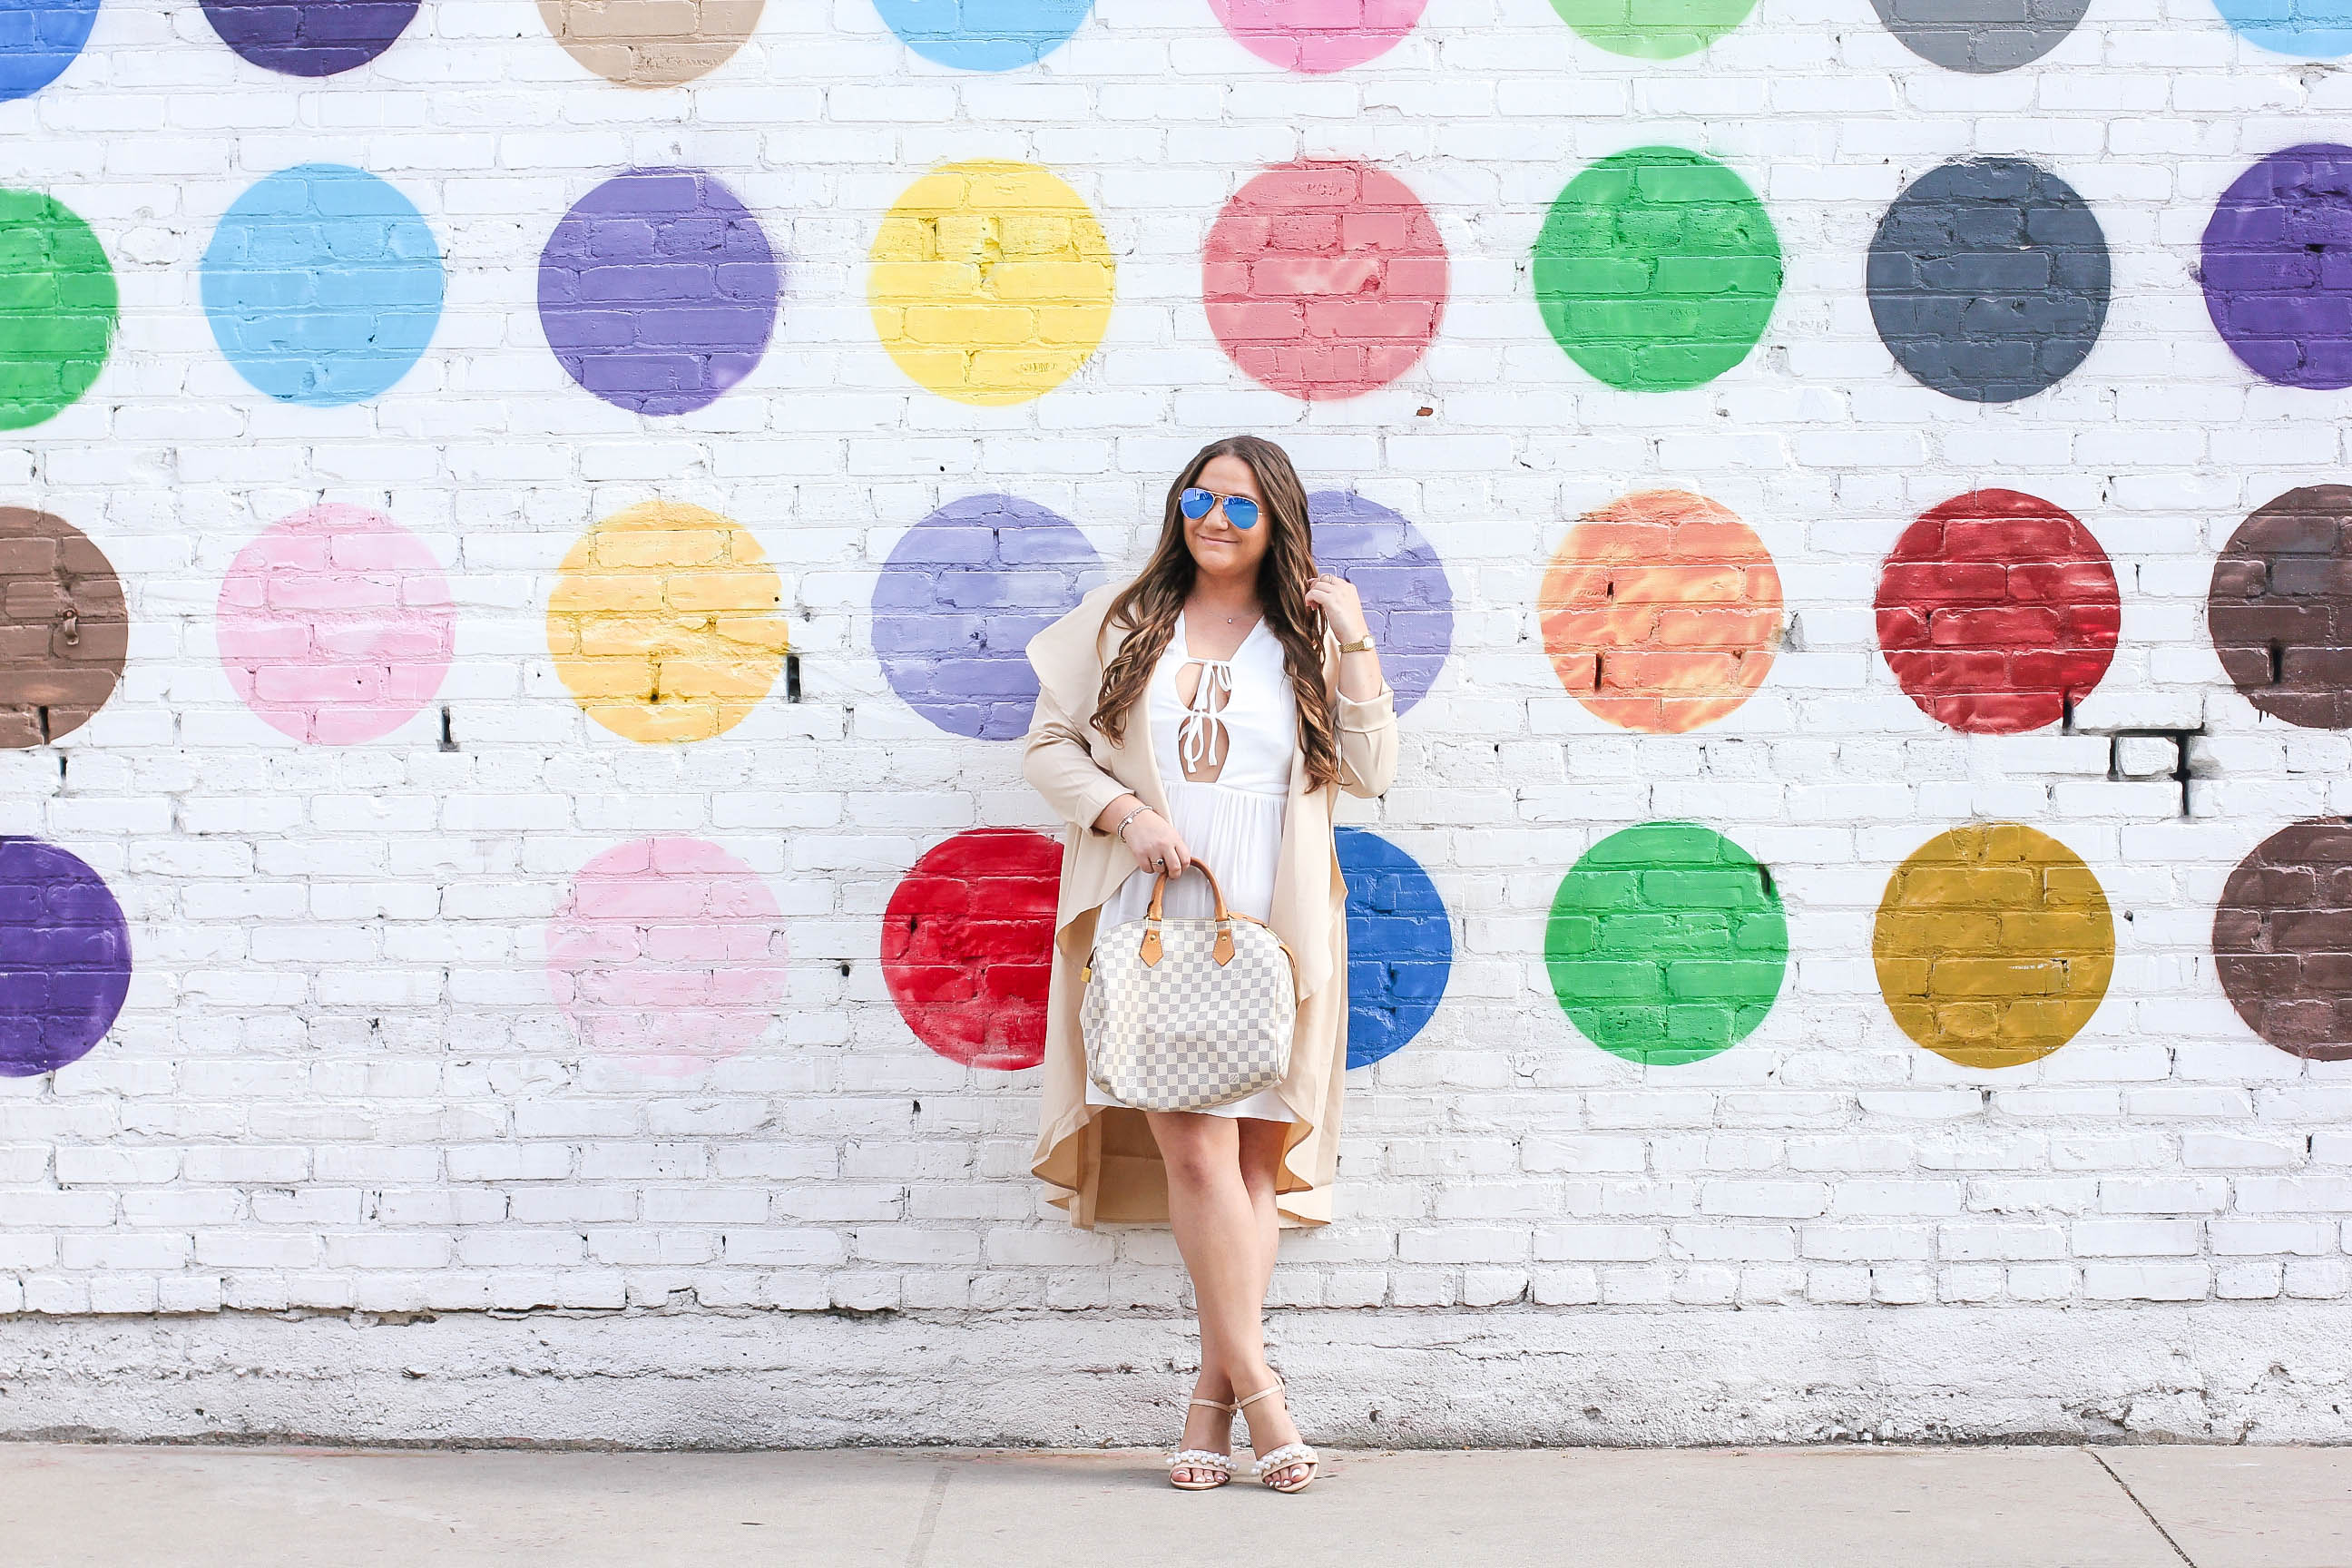 missyonmadison, missyonmadison instagram, melissa tierney, la blogger, fashion blogger, wall charades, studio diy wall crawl, polka dot wall, dtla polka dot wall, the springs la, ami clubwear, ankle strap heels, nude ankle strap sandals, louis vuitton speedy bag, raybans, white dress, white plunge dress, tan trench coat, trench coat, pearl heels, bloglovin, style blogger, street style,